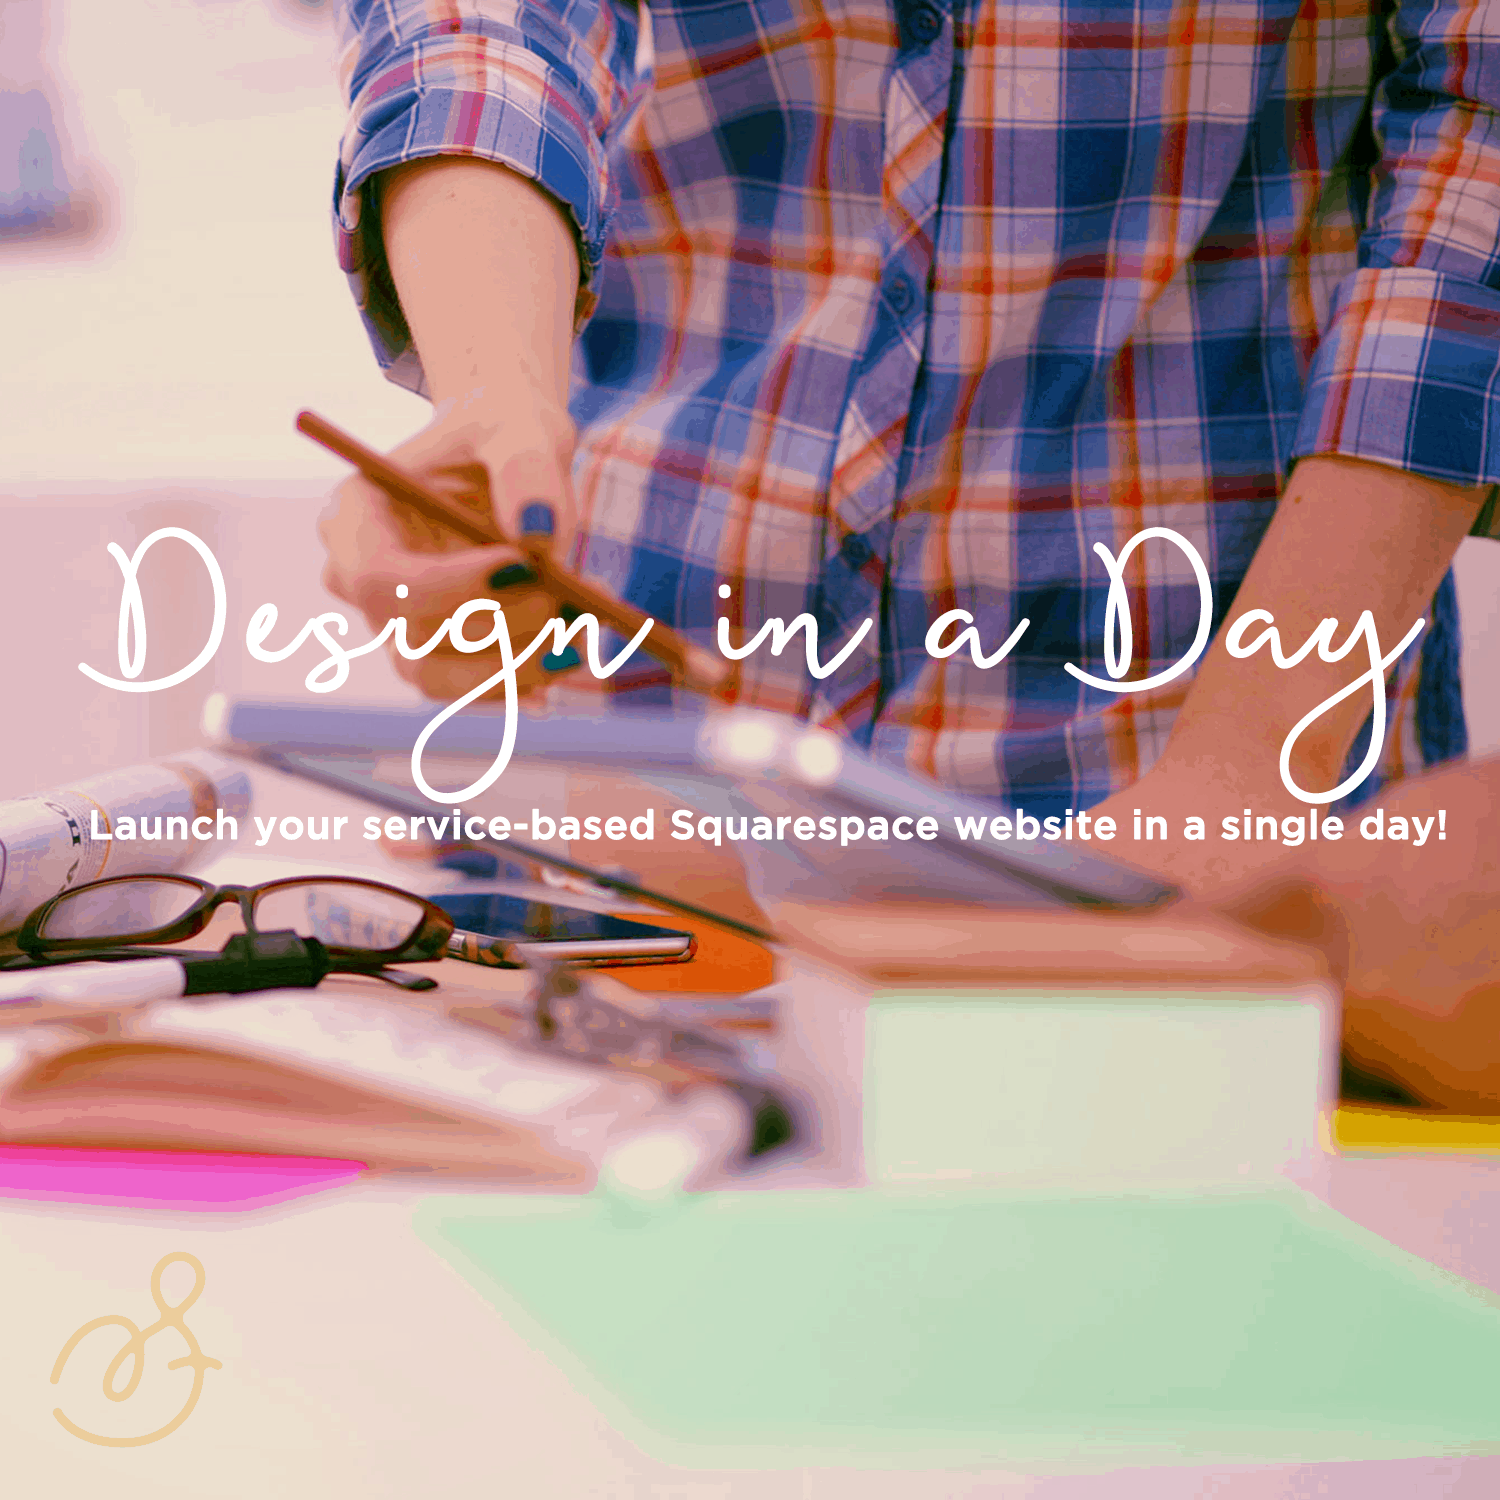 Design in a Day - Launch your Squarespace website in just one day with Sarah Moon & Kath O'Malley. sarahmoon.net